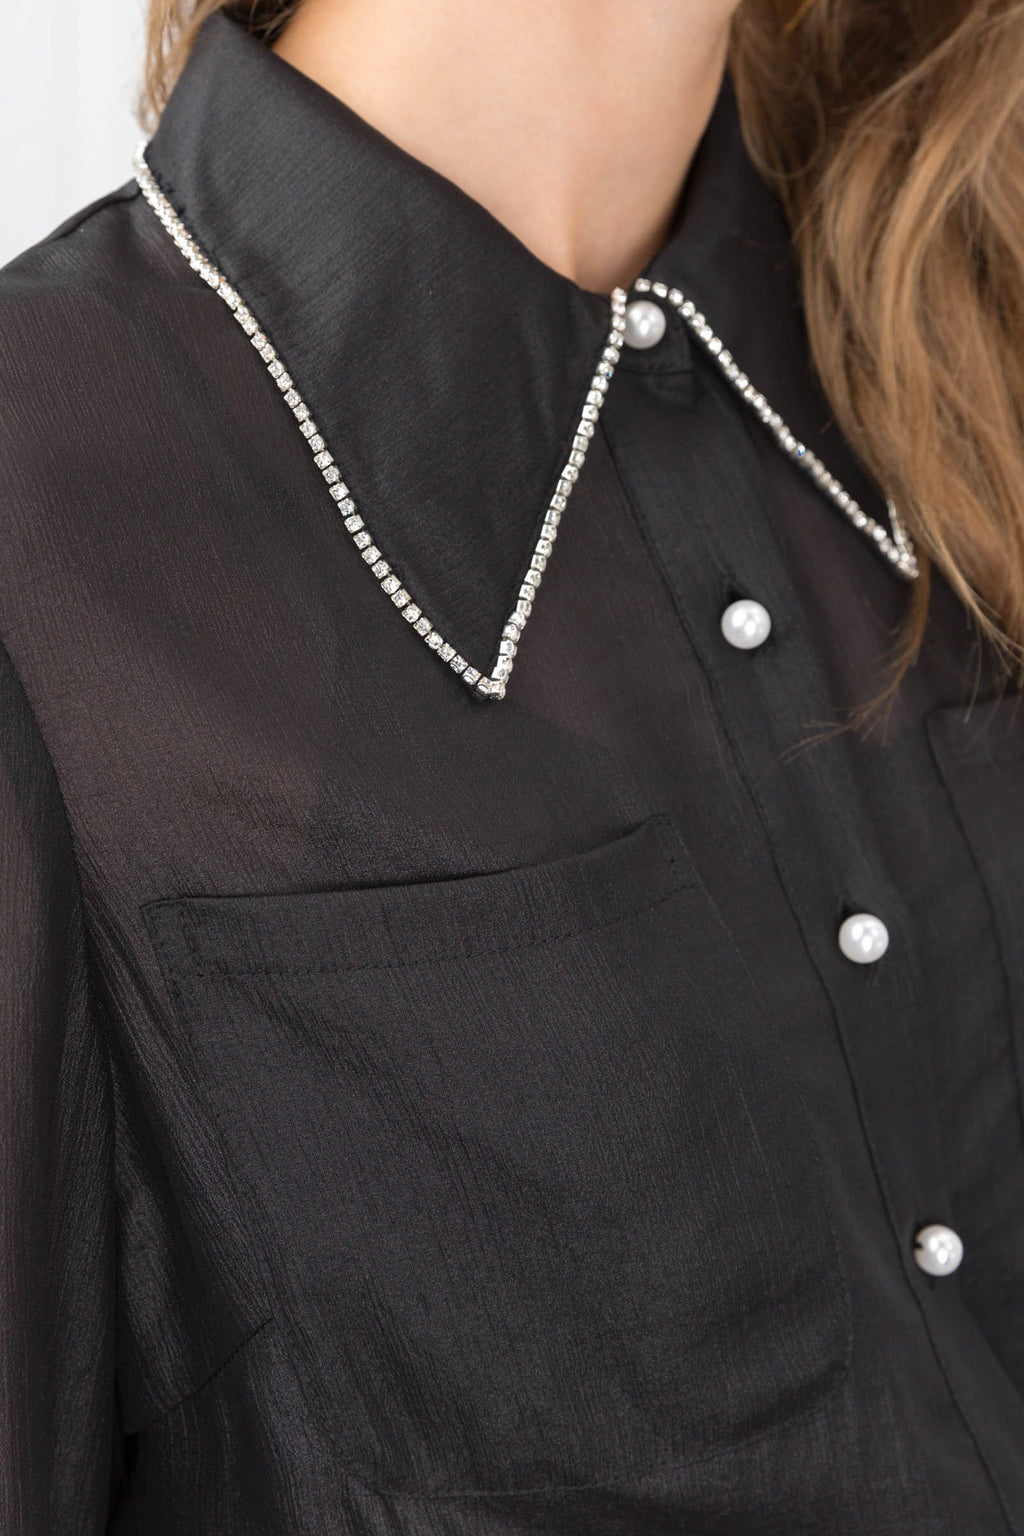 The Cheeky Kerra Blouse in Tops by J.ING - an L.A based women's fashion line